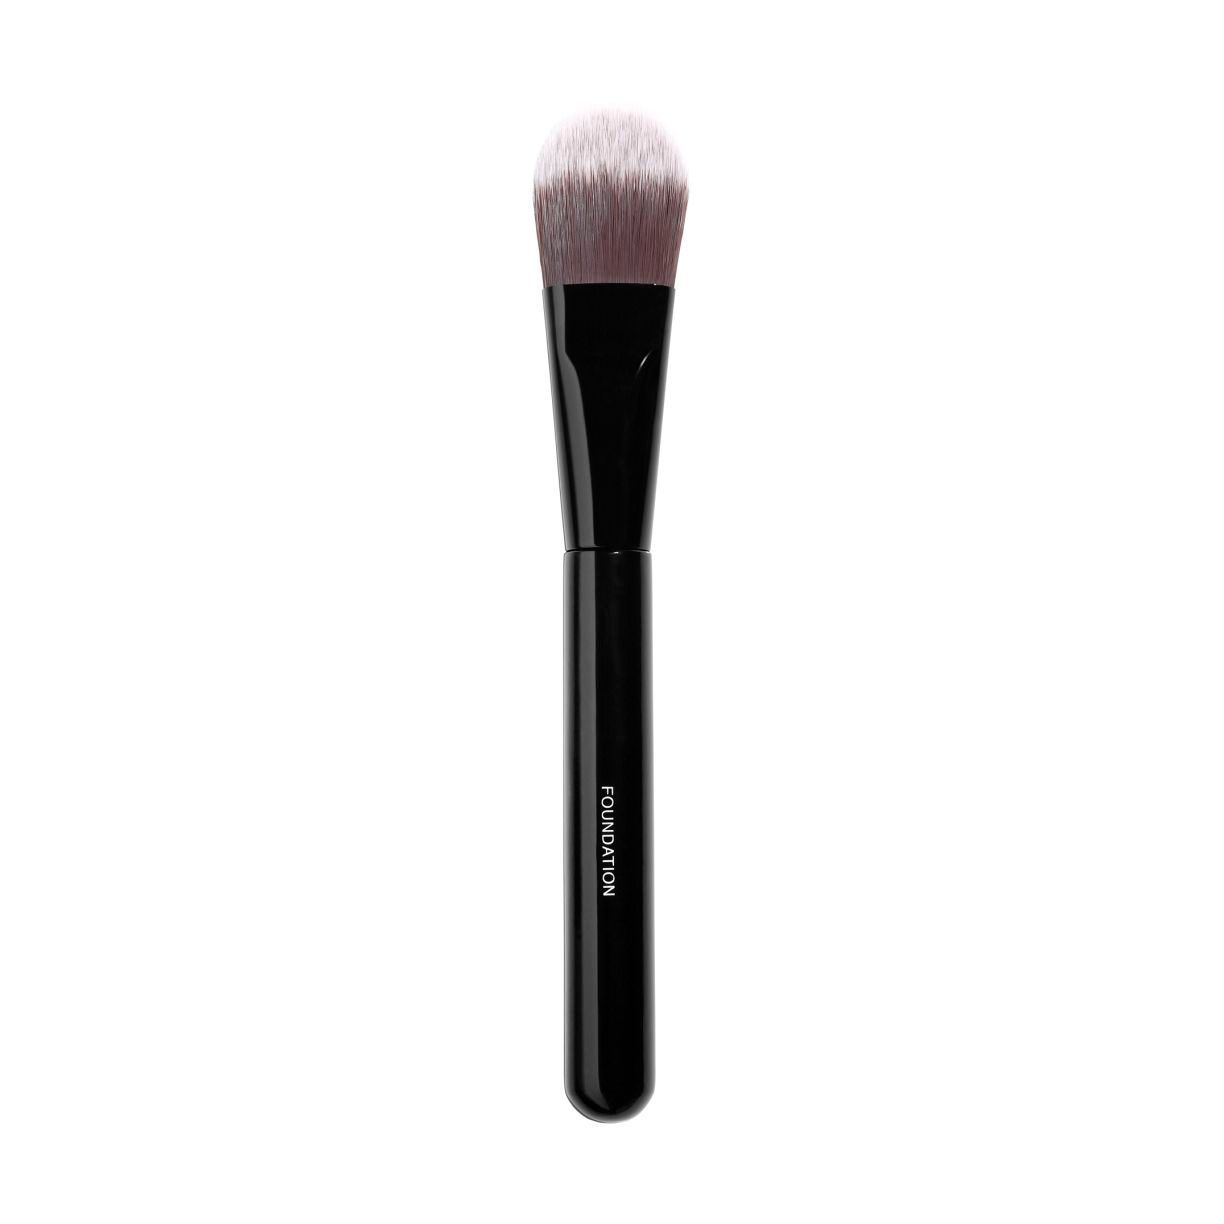 PINCEAU FOND DE TEINT FOUNDATION BRUSH 1pce